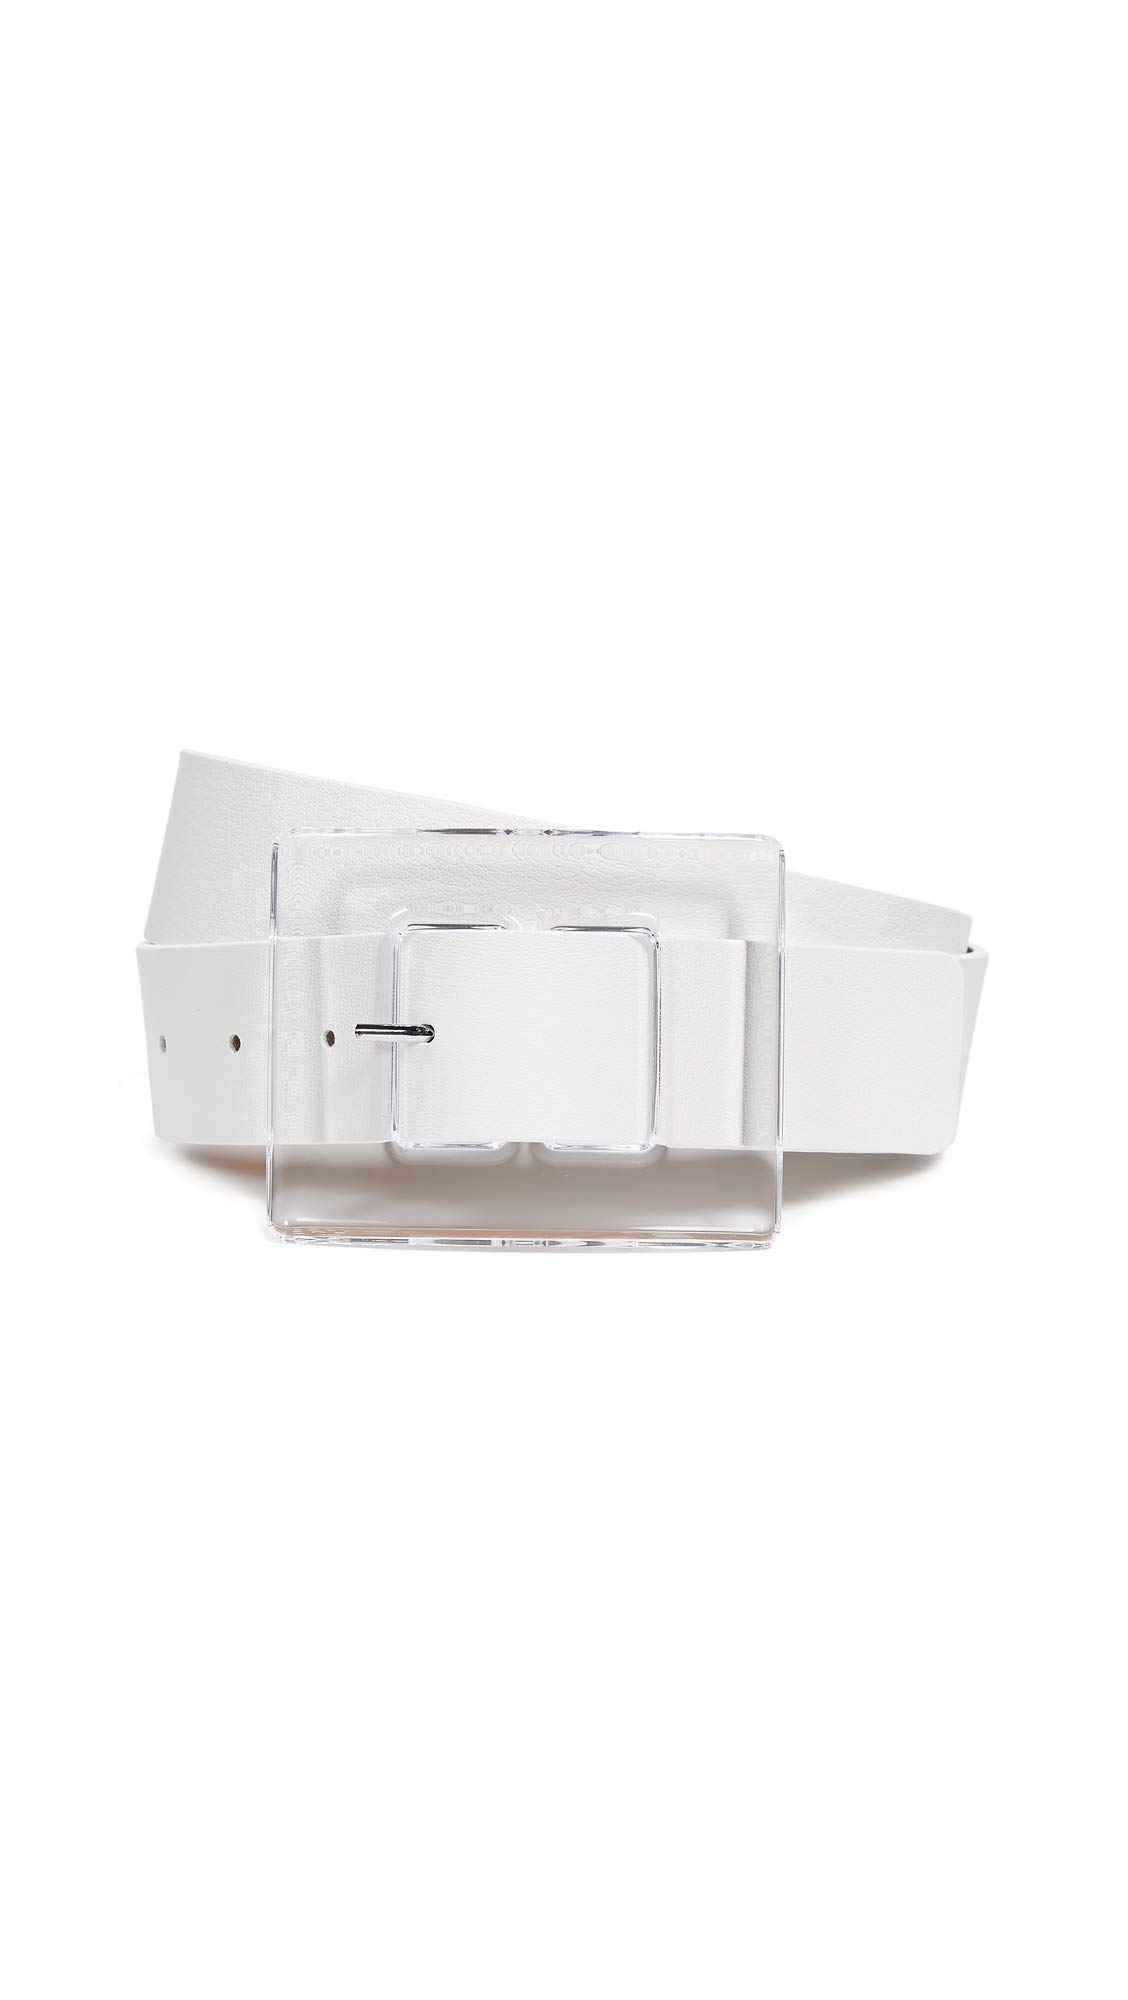 B-Low The Belt Women's Chloe Belt, Gesso, White, Clear, Small